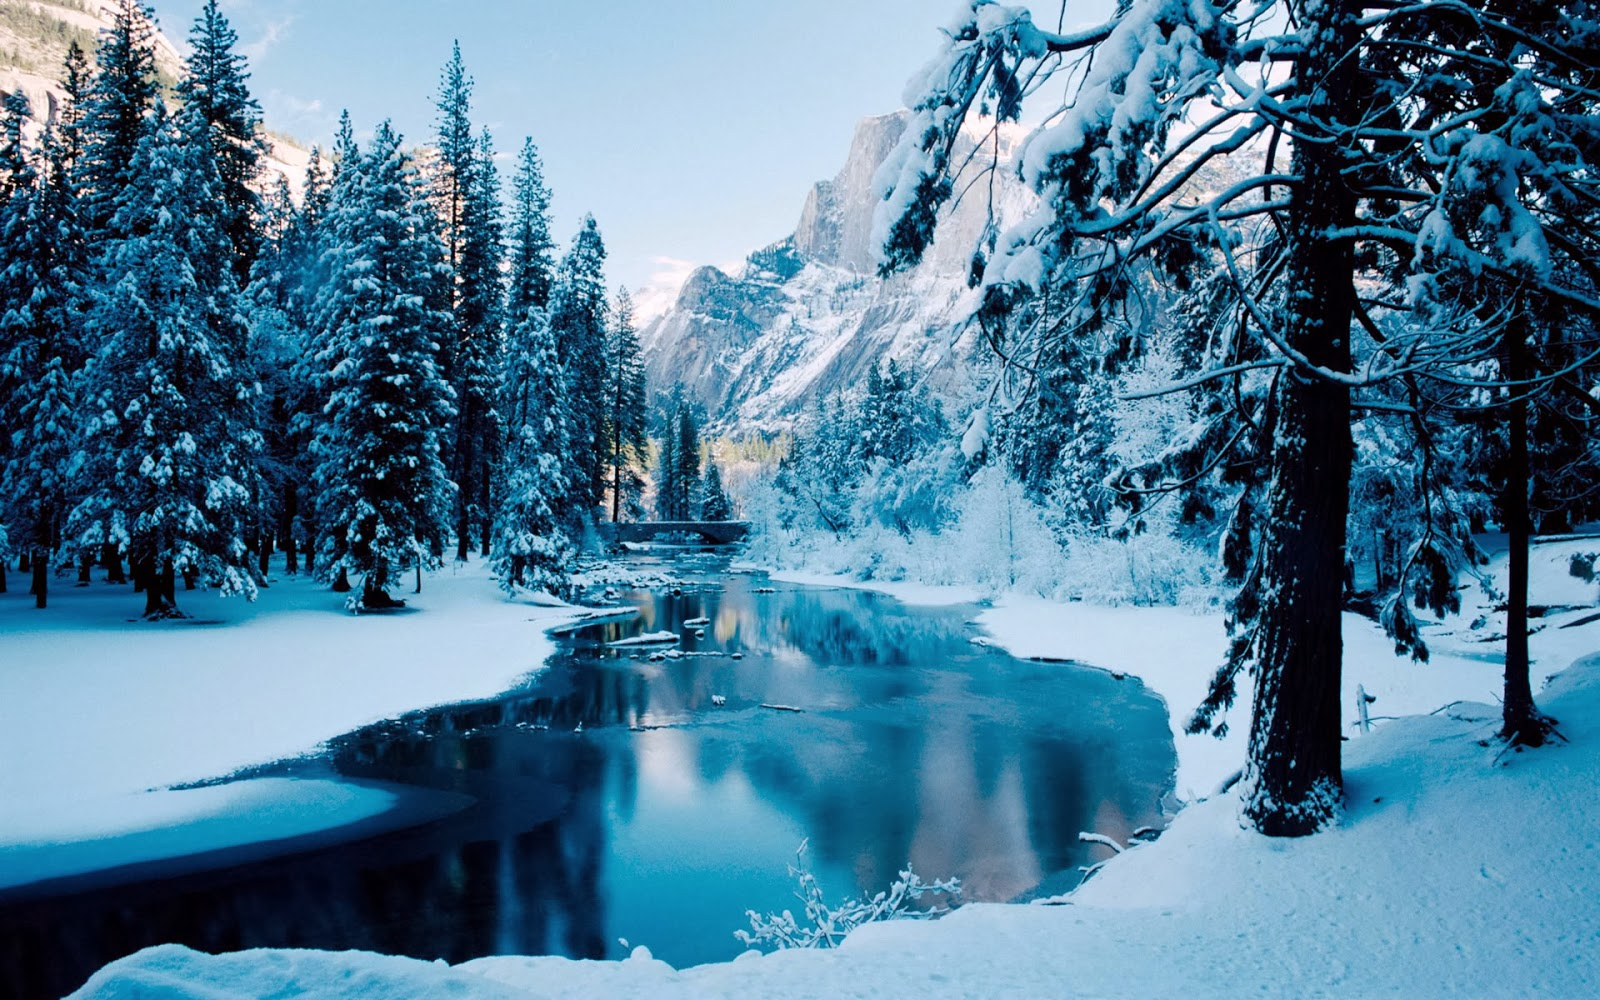 Winter Scenes Wallpapers Backgrounds 1600x1000